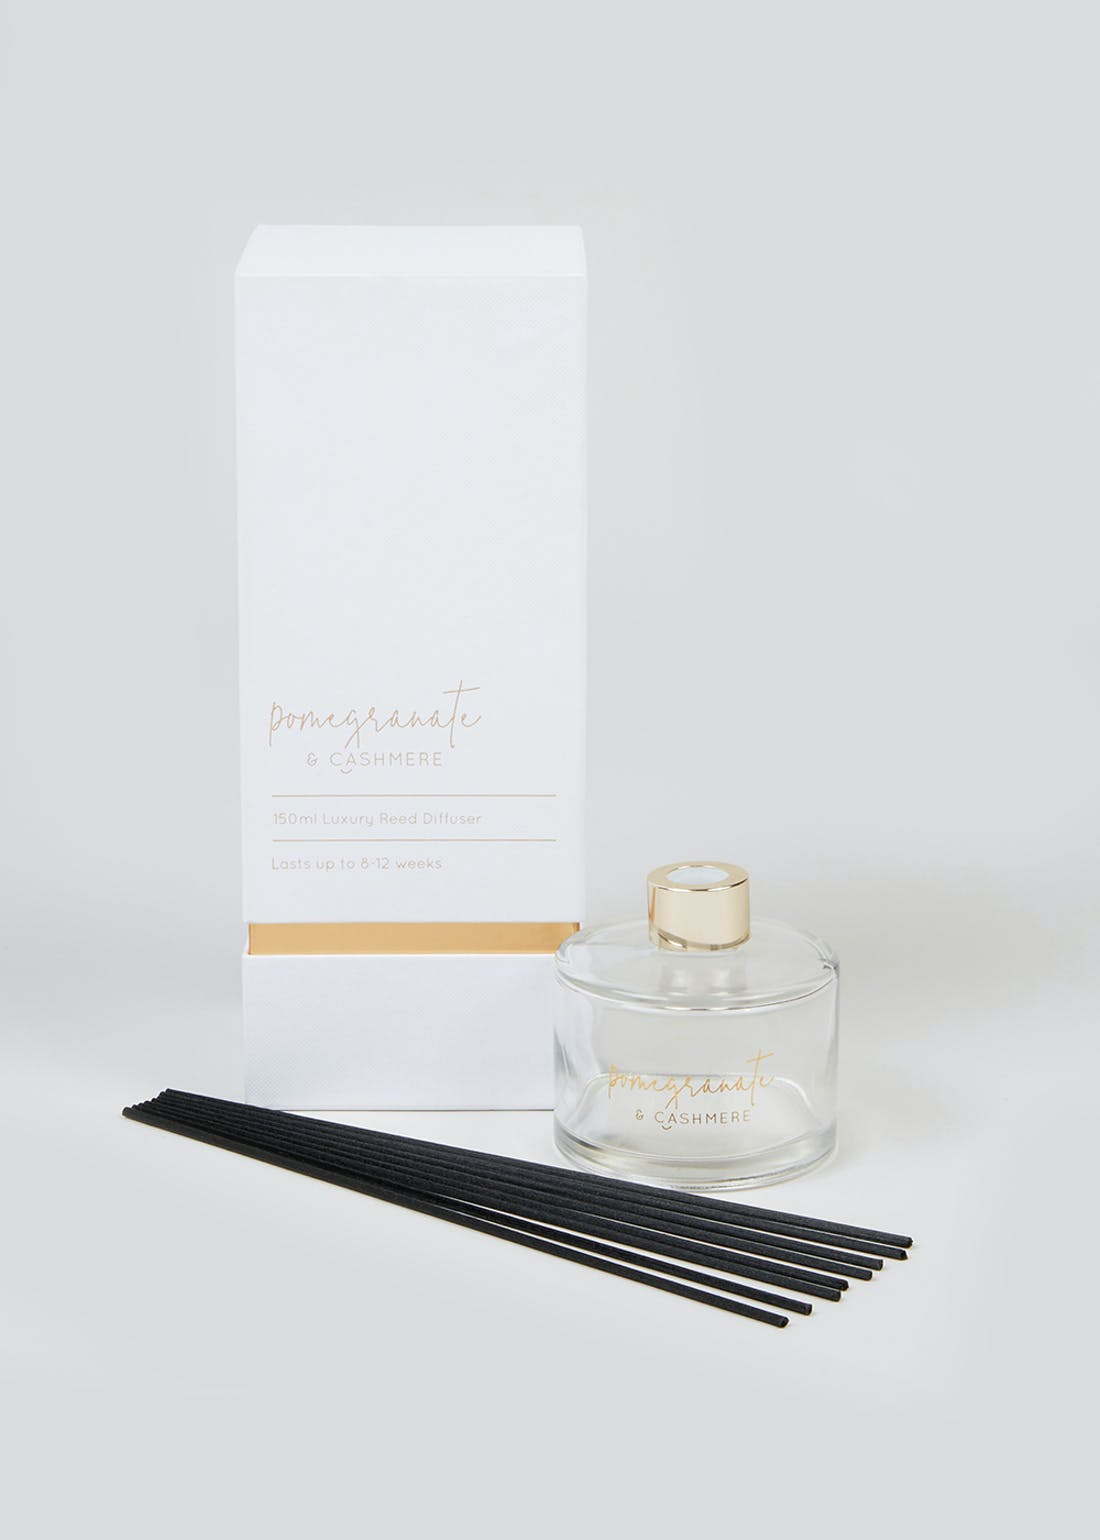 Pomegranate & Cashmere Luxury Reed Diffuser (150ml)